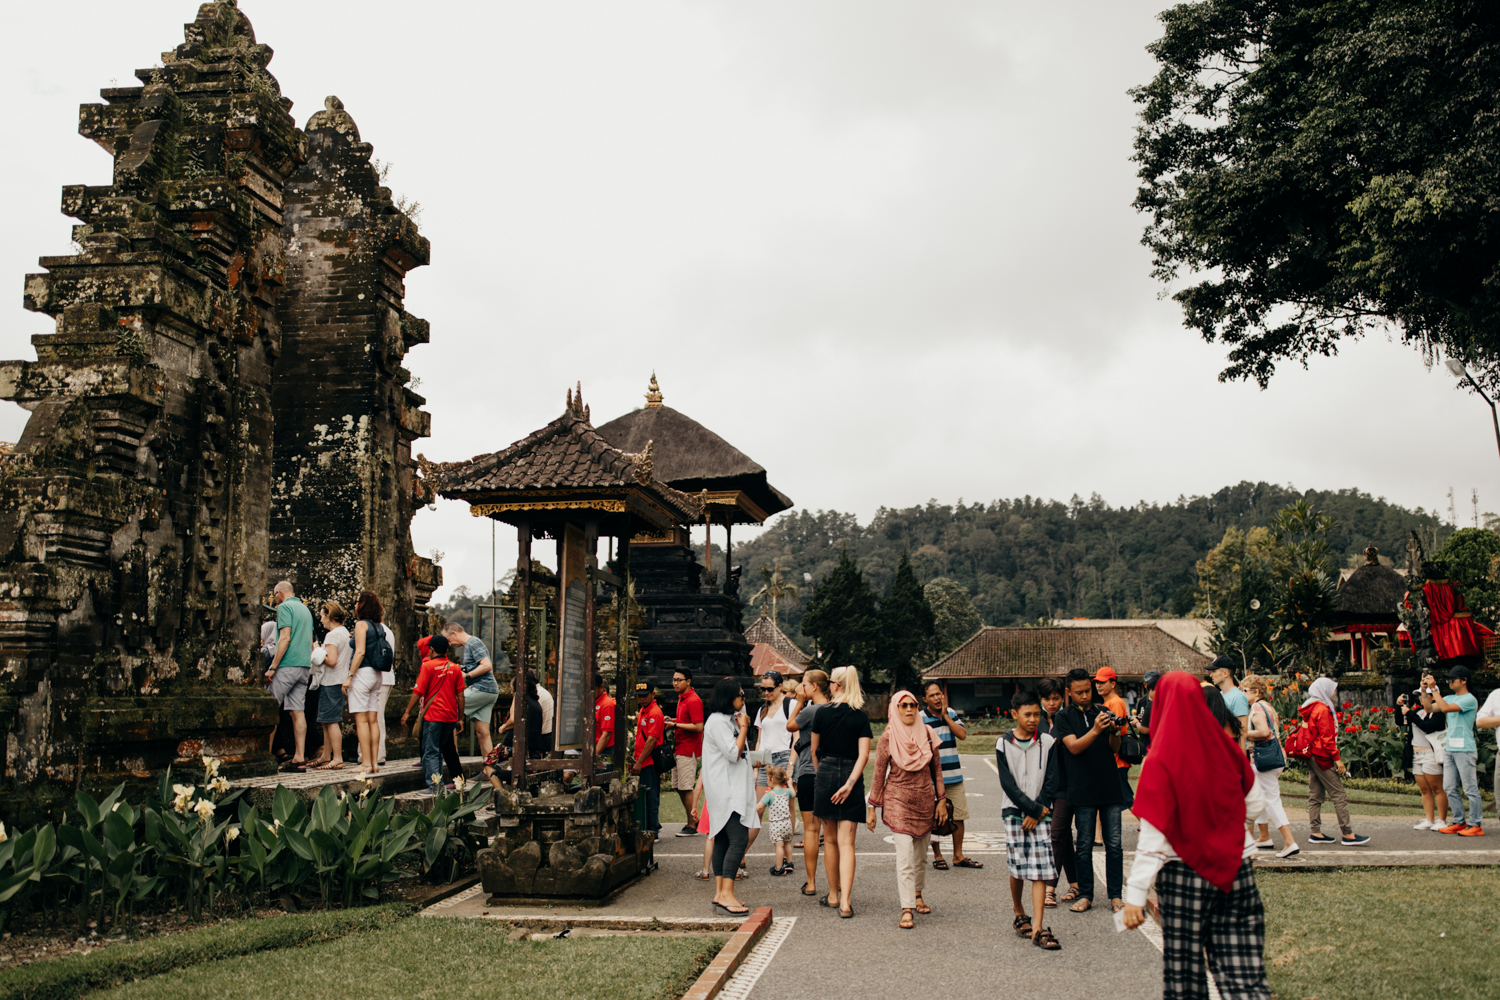 Visiting a temple in Bali, Indonesia